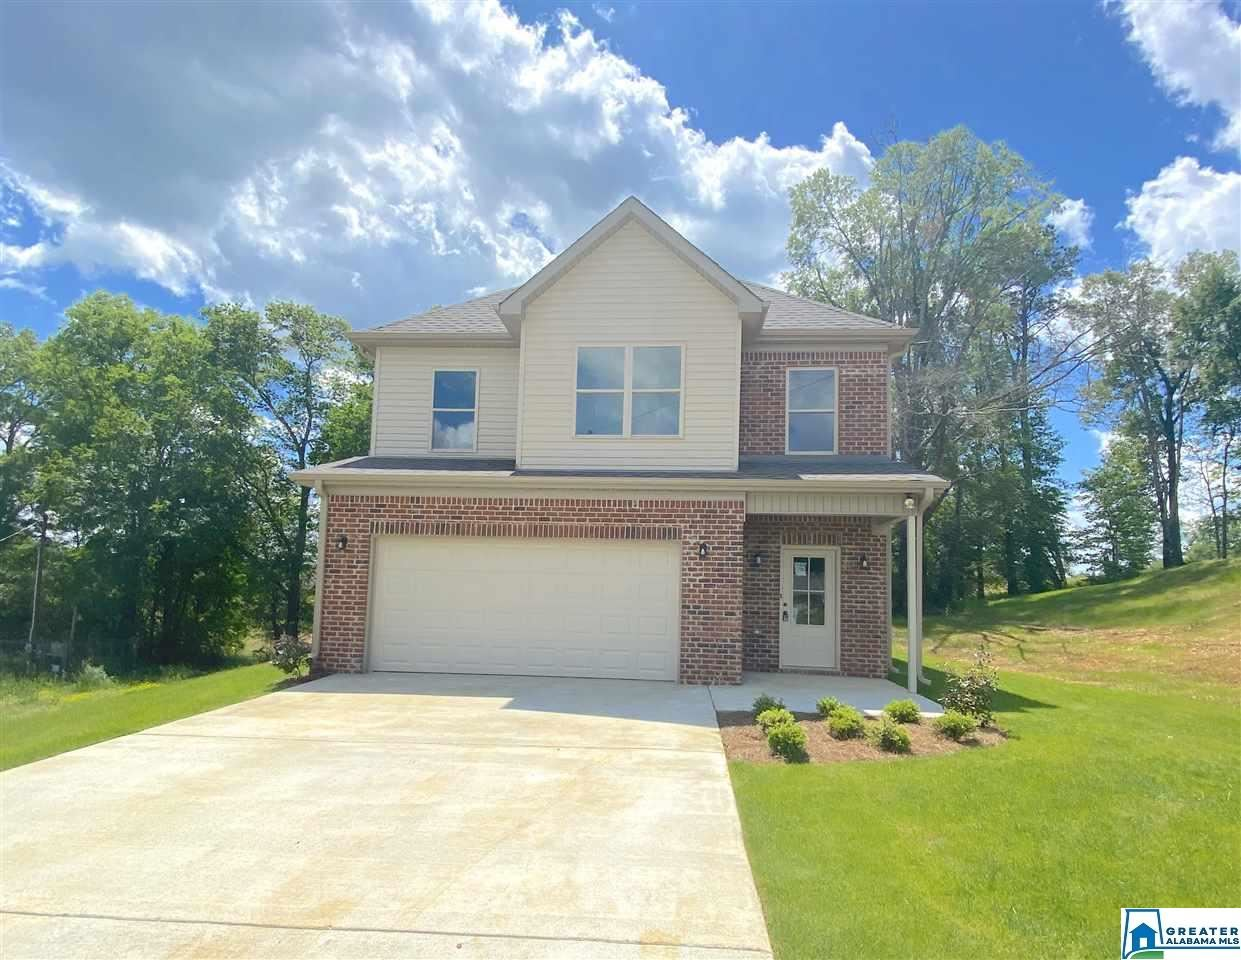 61 HADLEY CT, Lincoln, AL 35096 - MLS#: 875099